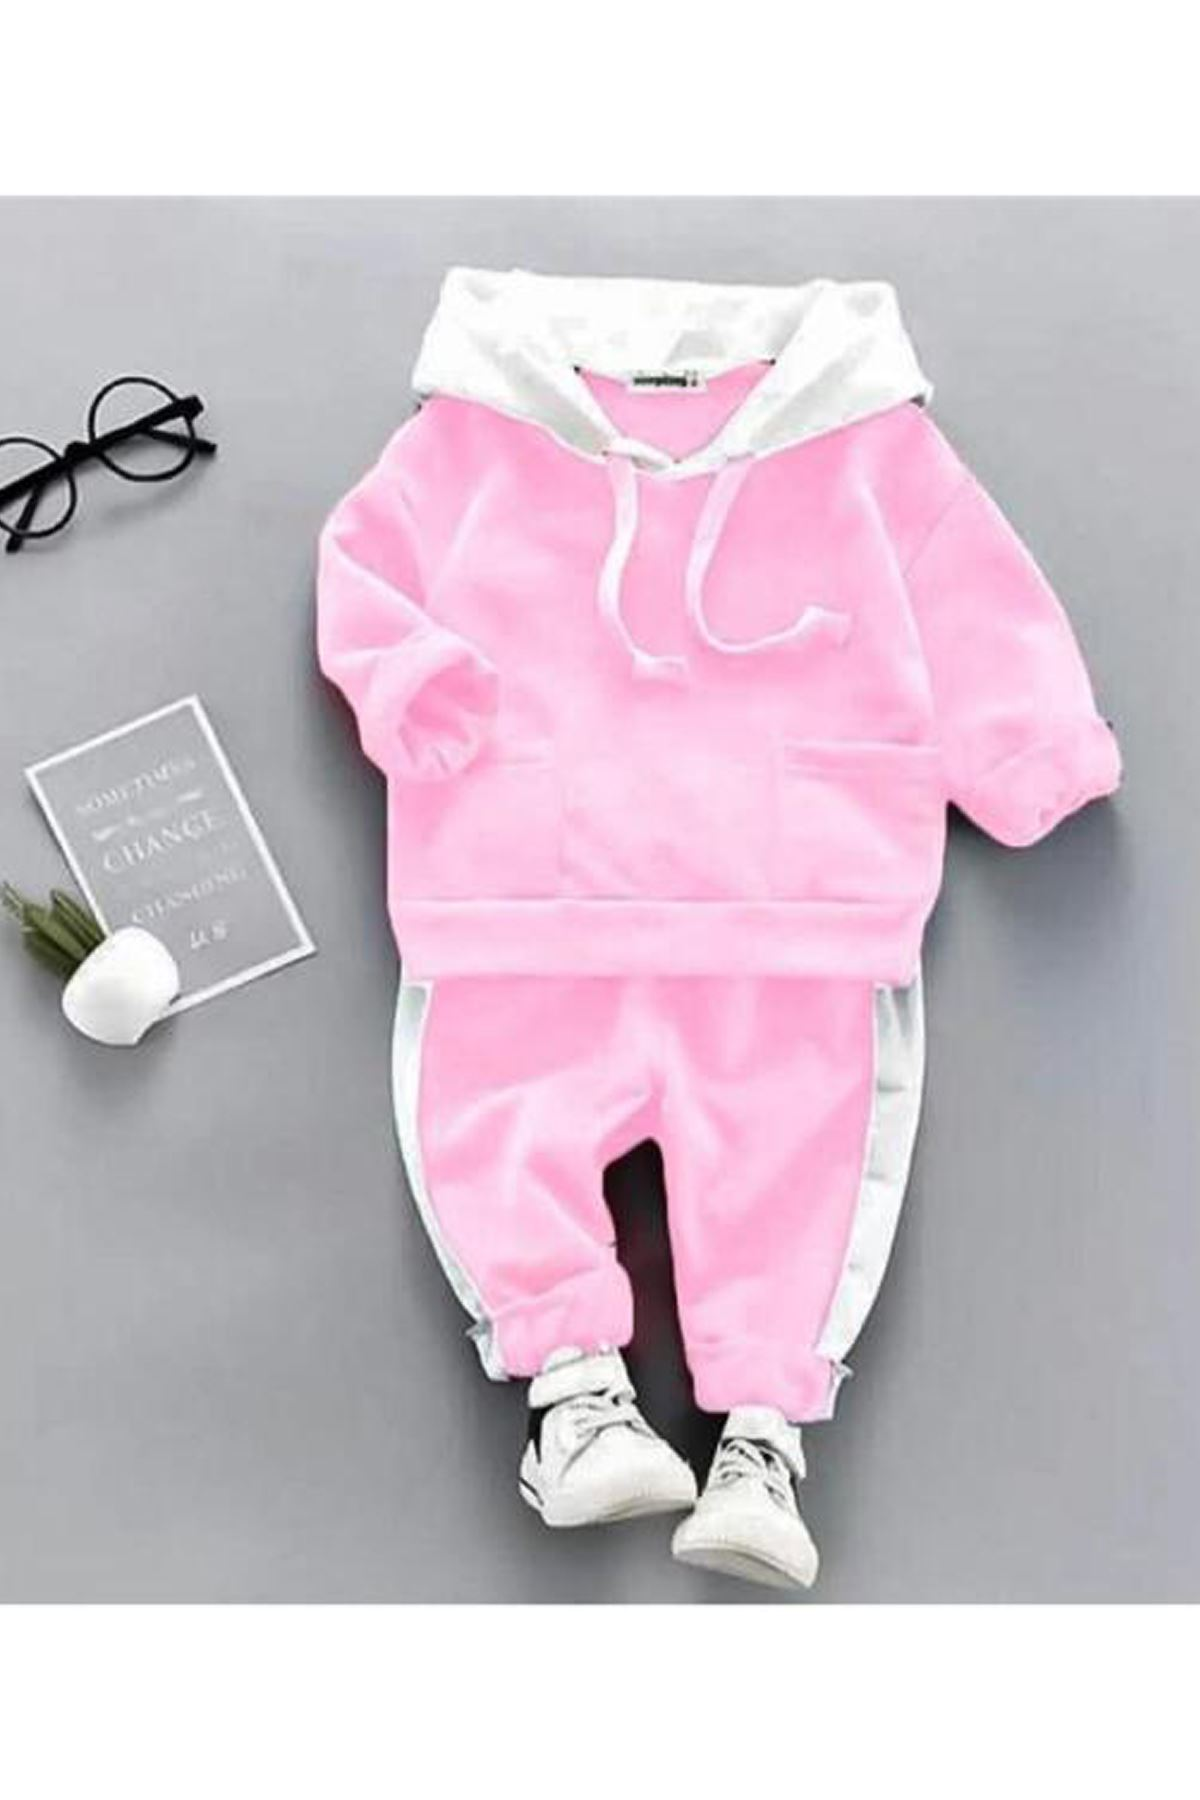 Pink Baby Girls Hooded Seasonal Suit Girl Babies Clothing Outfit Set Kids Models Cotton Casual 2021 Fashion Style Model